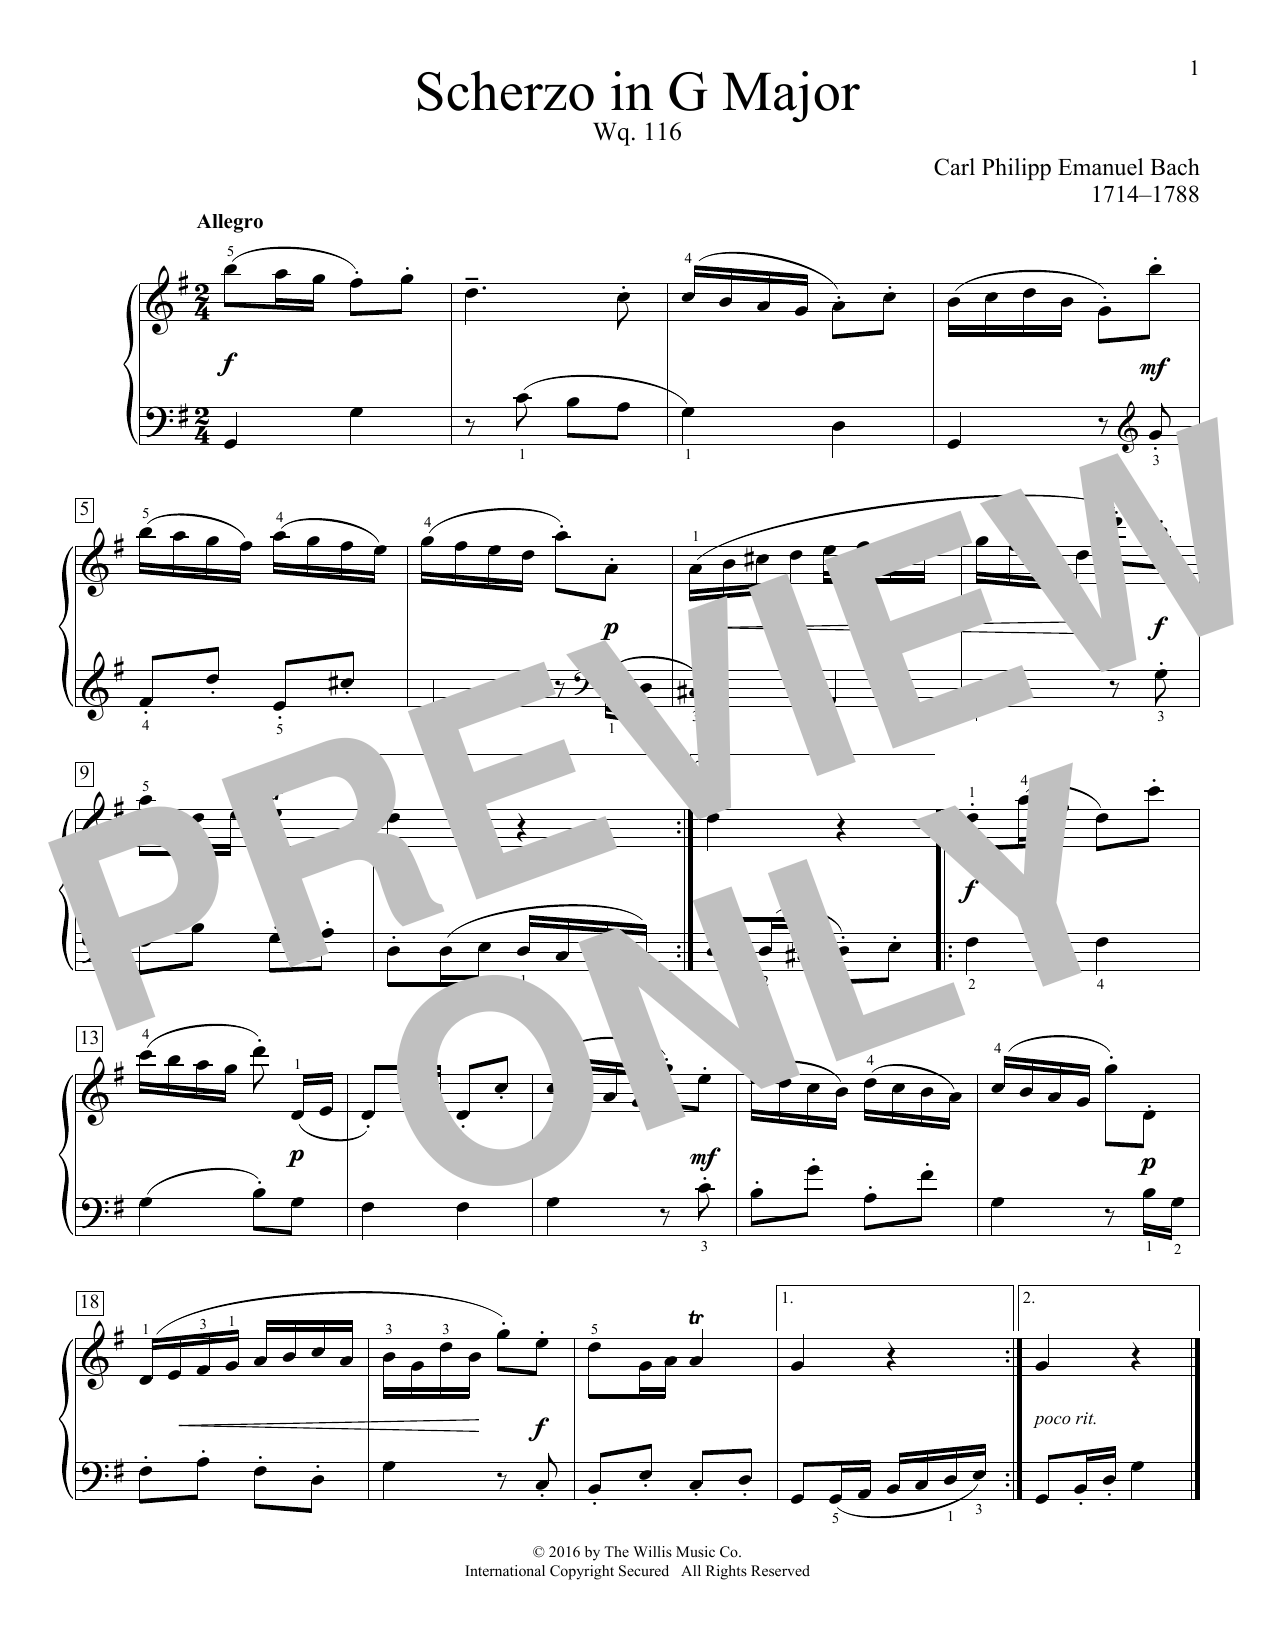 Carl Philipp Emanuel Bach Scherzo In G Major, Wq. 116 sheet music notes and chords. Download Printable PDF.